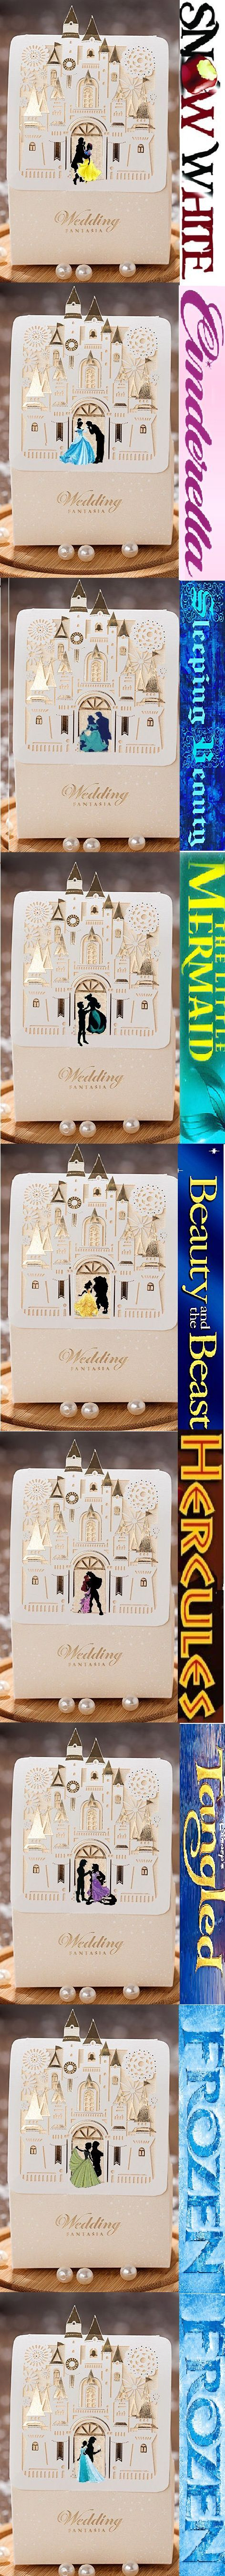 ALL Available individually on Ebay.   Search: Disney Wedding Gift Favor Boxes (Princess) for easier accessibility. More to come!! http://www.ebay.com/itm/Disney-wedding-candy-gift-favor-boxes-Sleeping-Beauty-Package-50pieces-per-set-/131685906507?hash=item1ea917784b:g:d6AAAOSwnGJWTU87